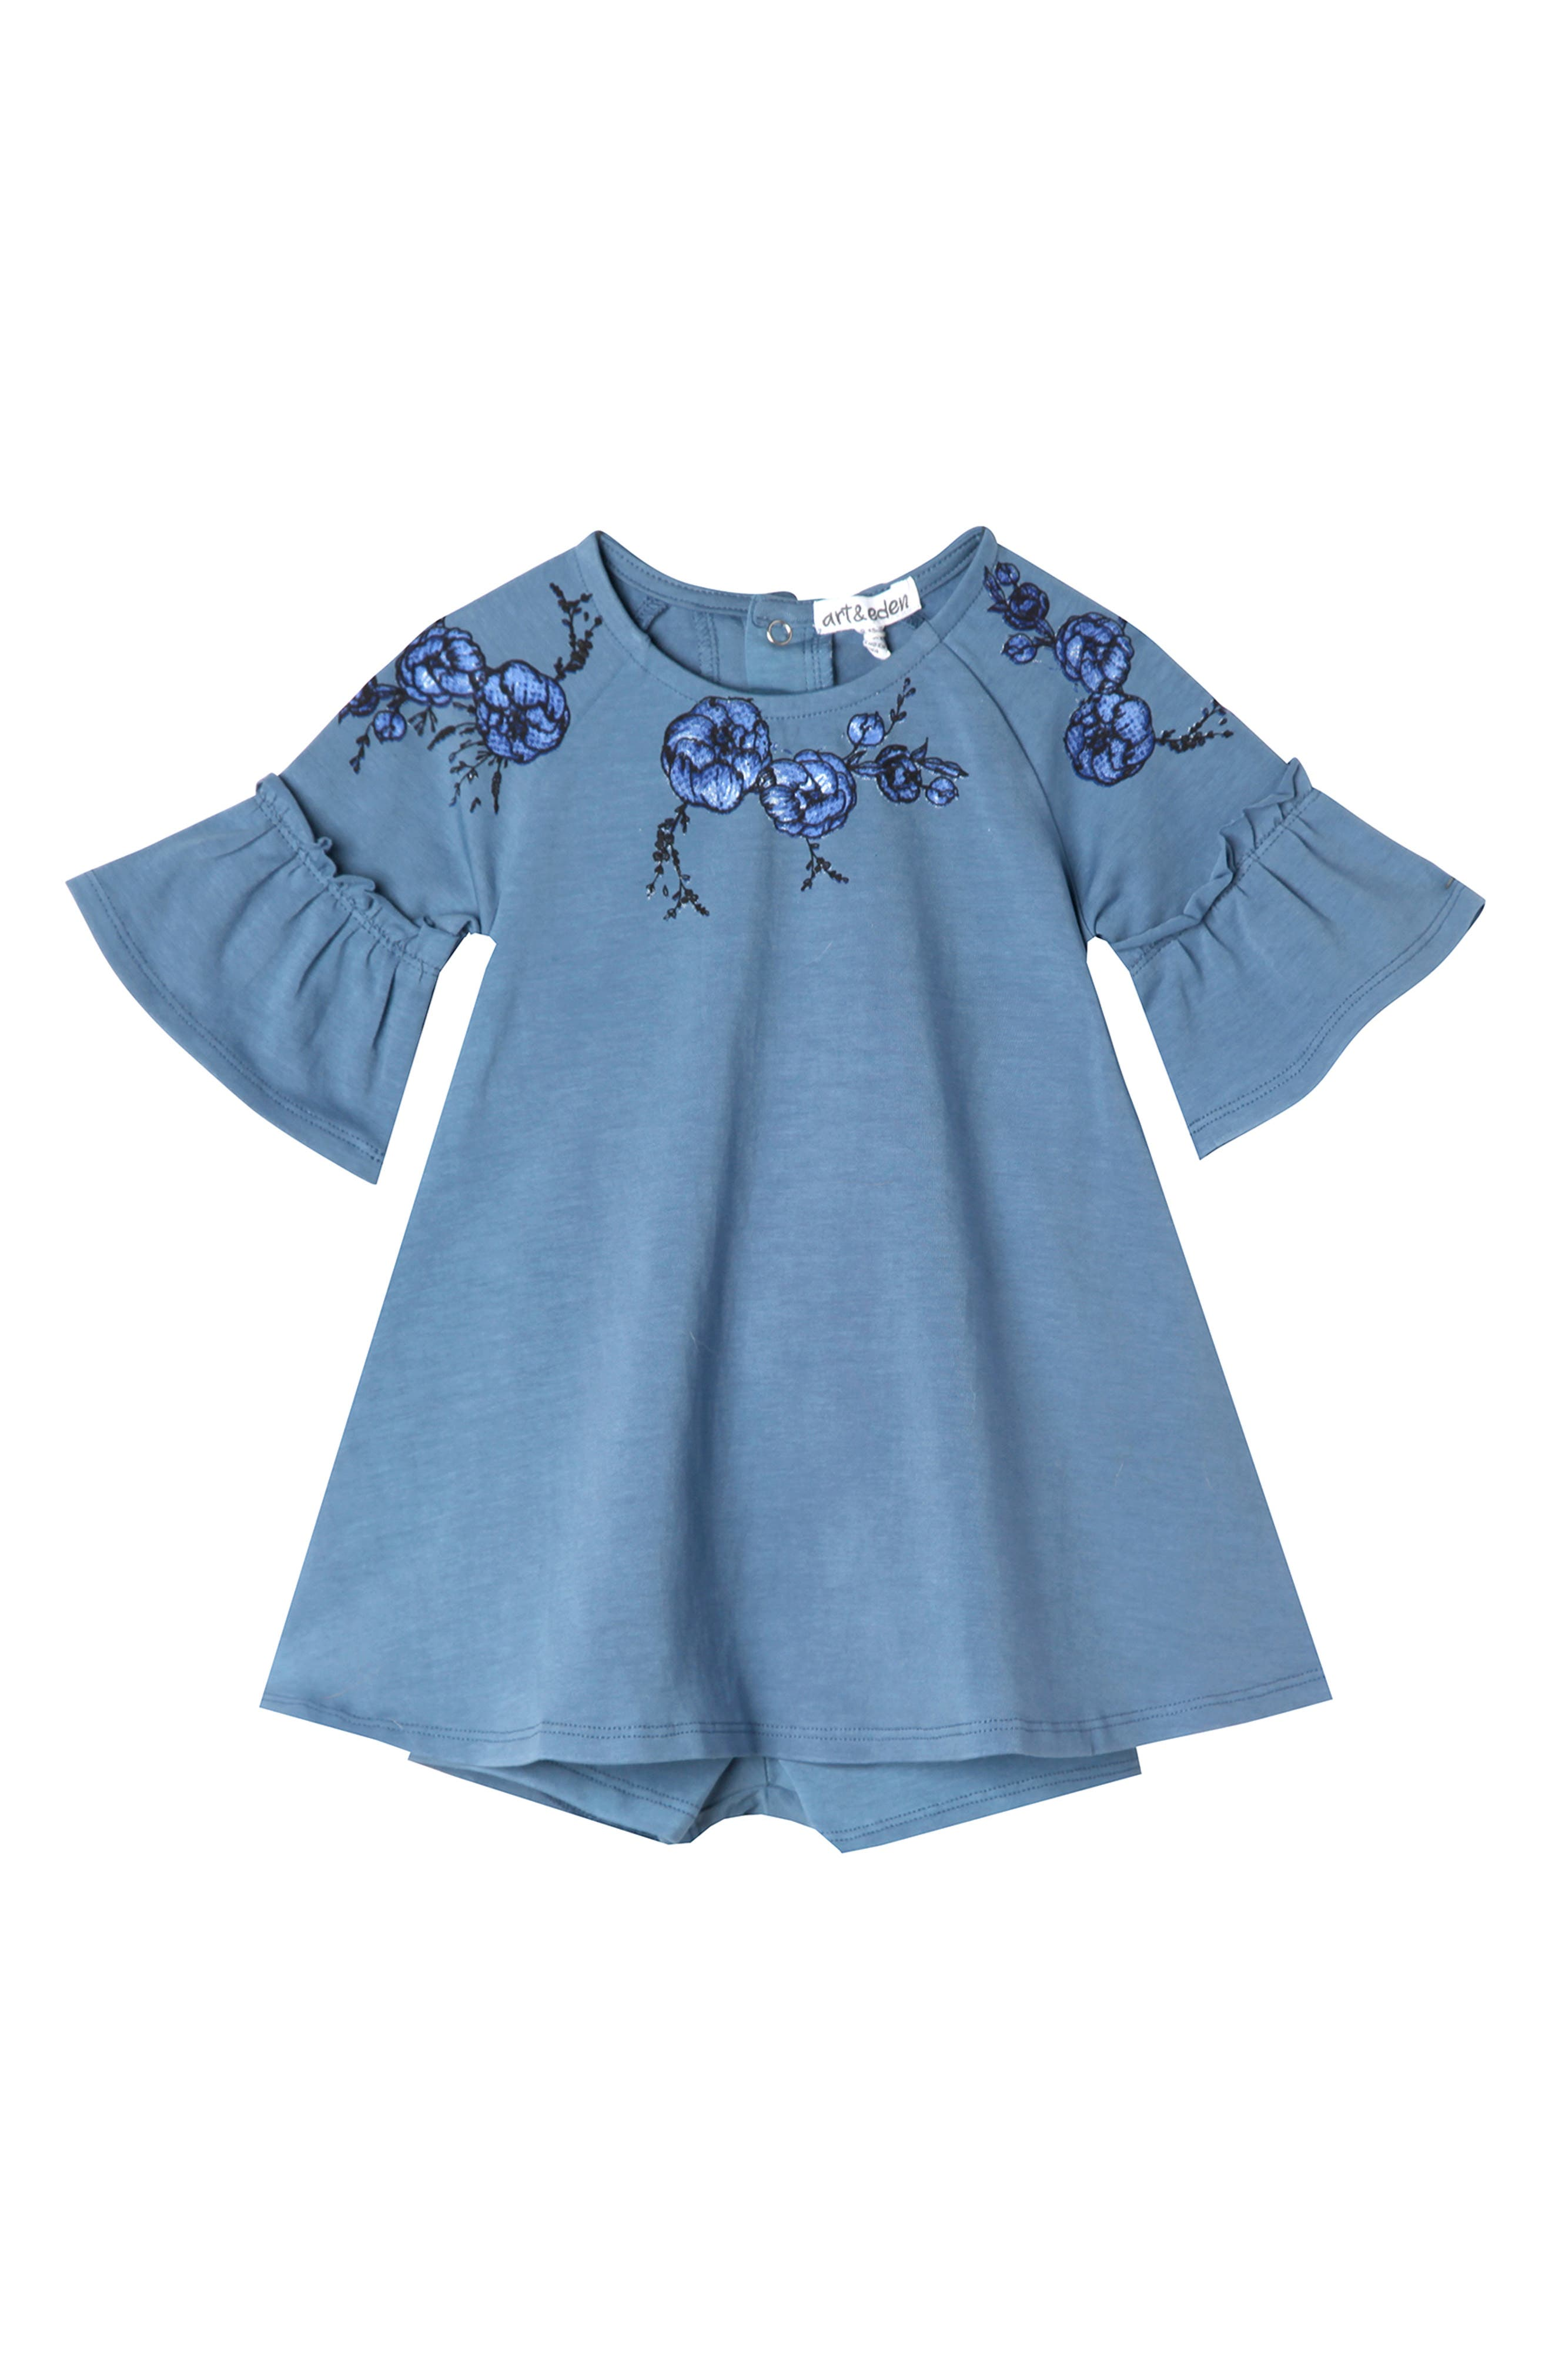 Abigail Embroidered Dress & Shorts Set,                             Main thumbnail 1, color,                             Aegean Blue